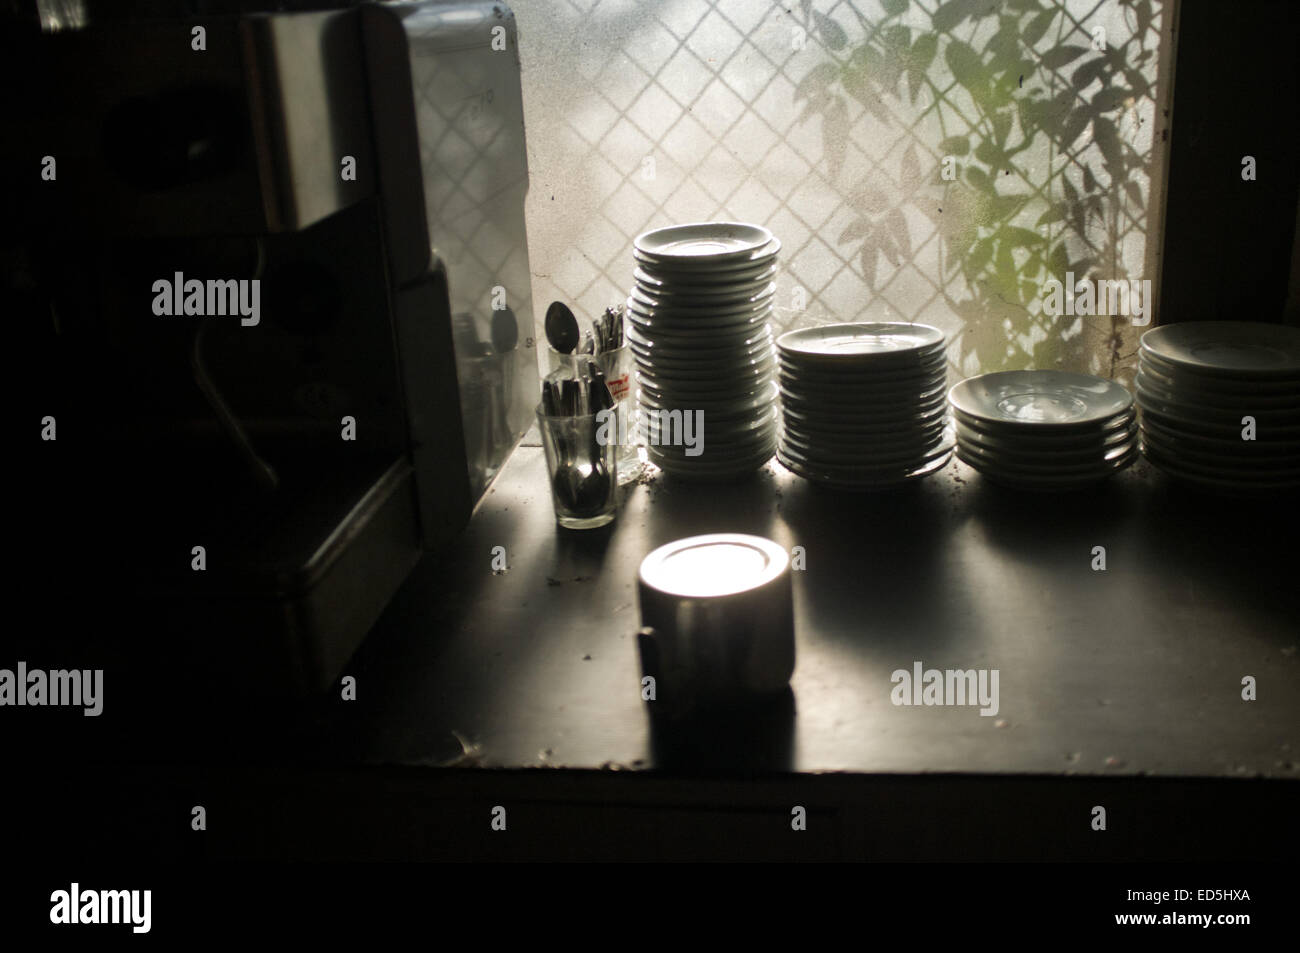 Saucers prepared at the counter of a bar. - Stock Image